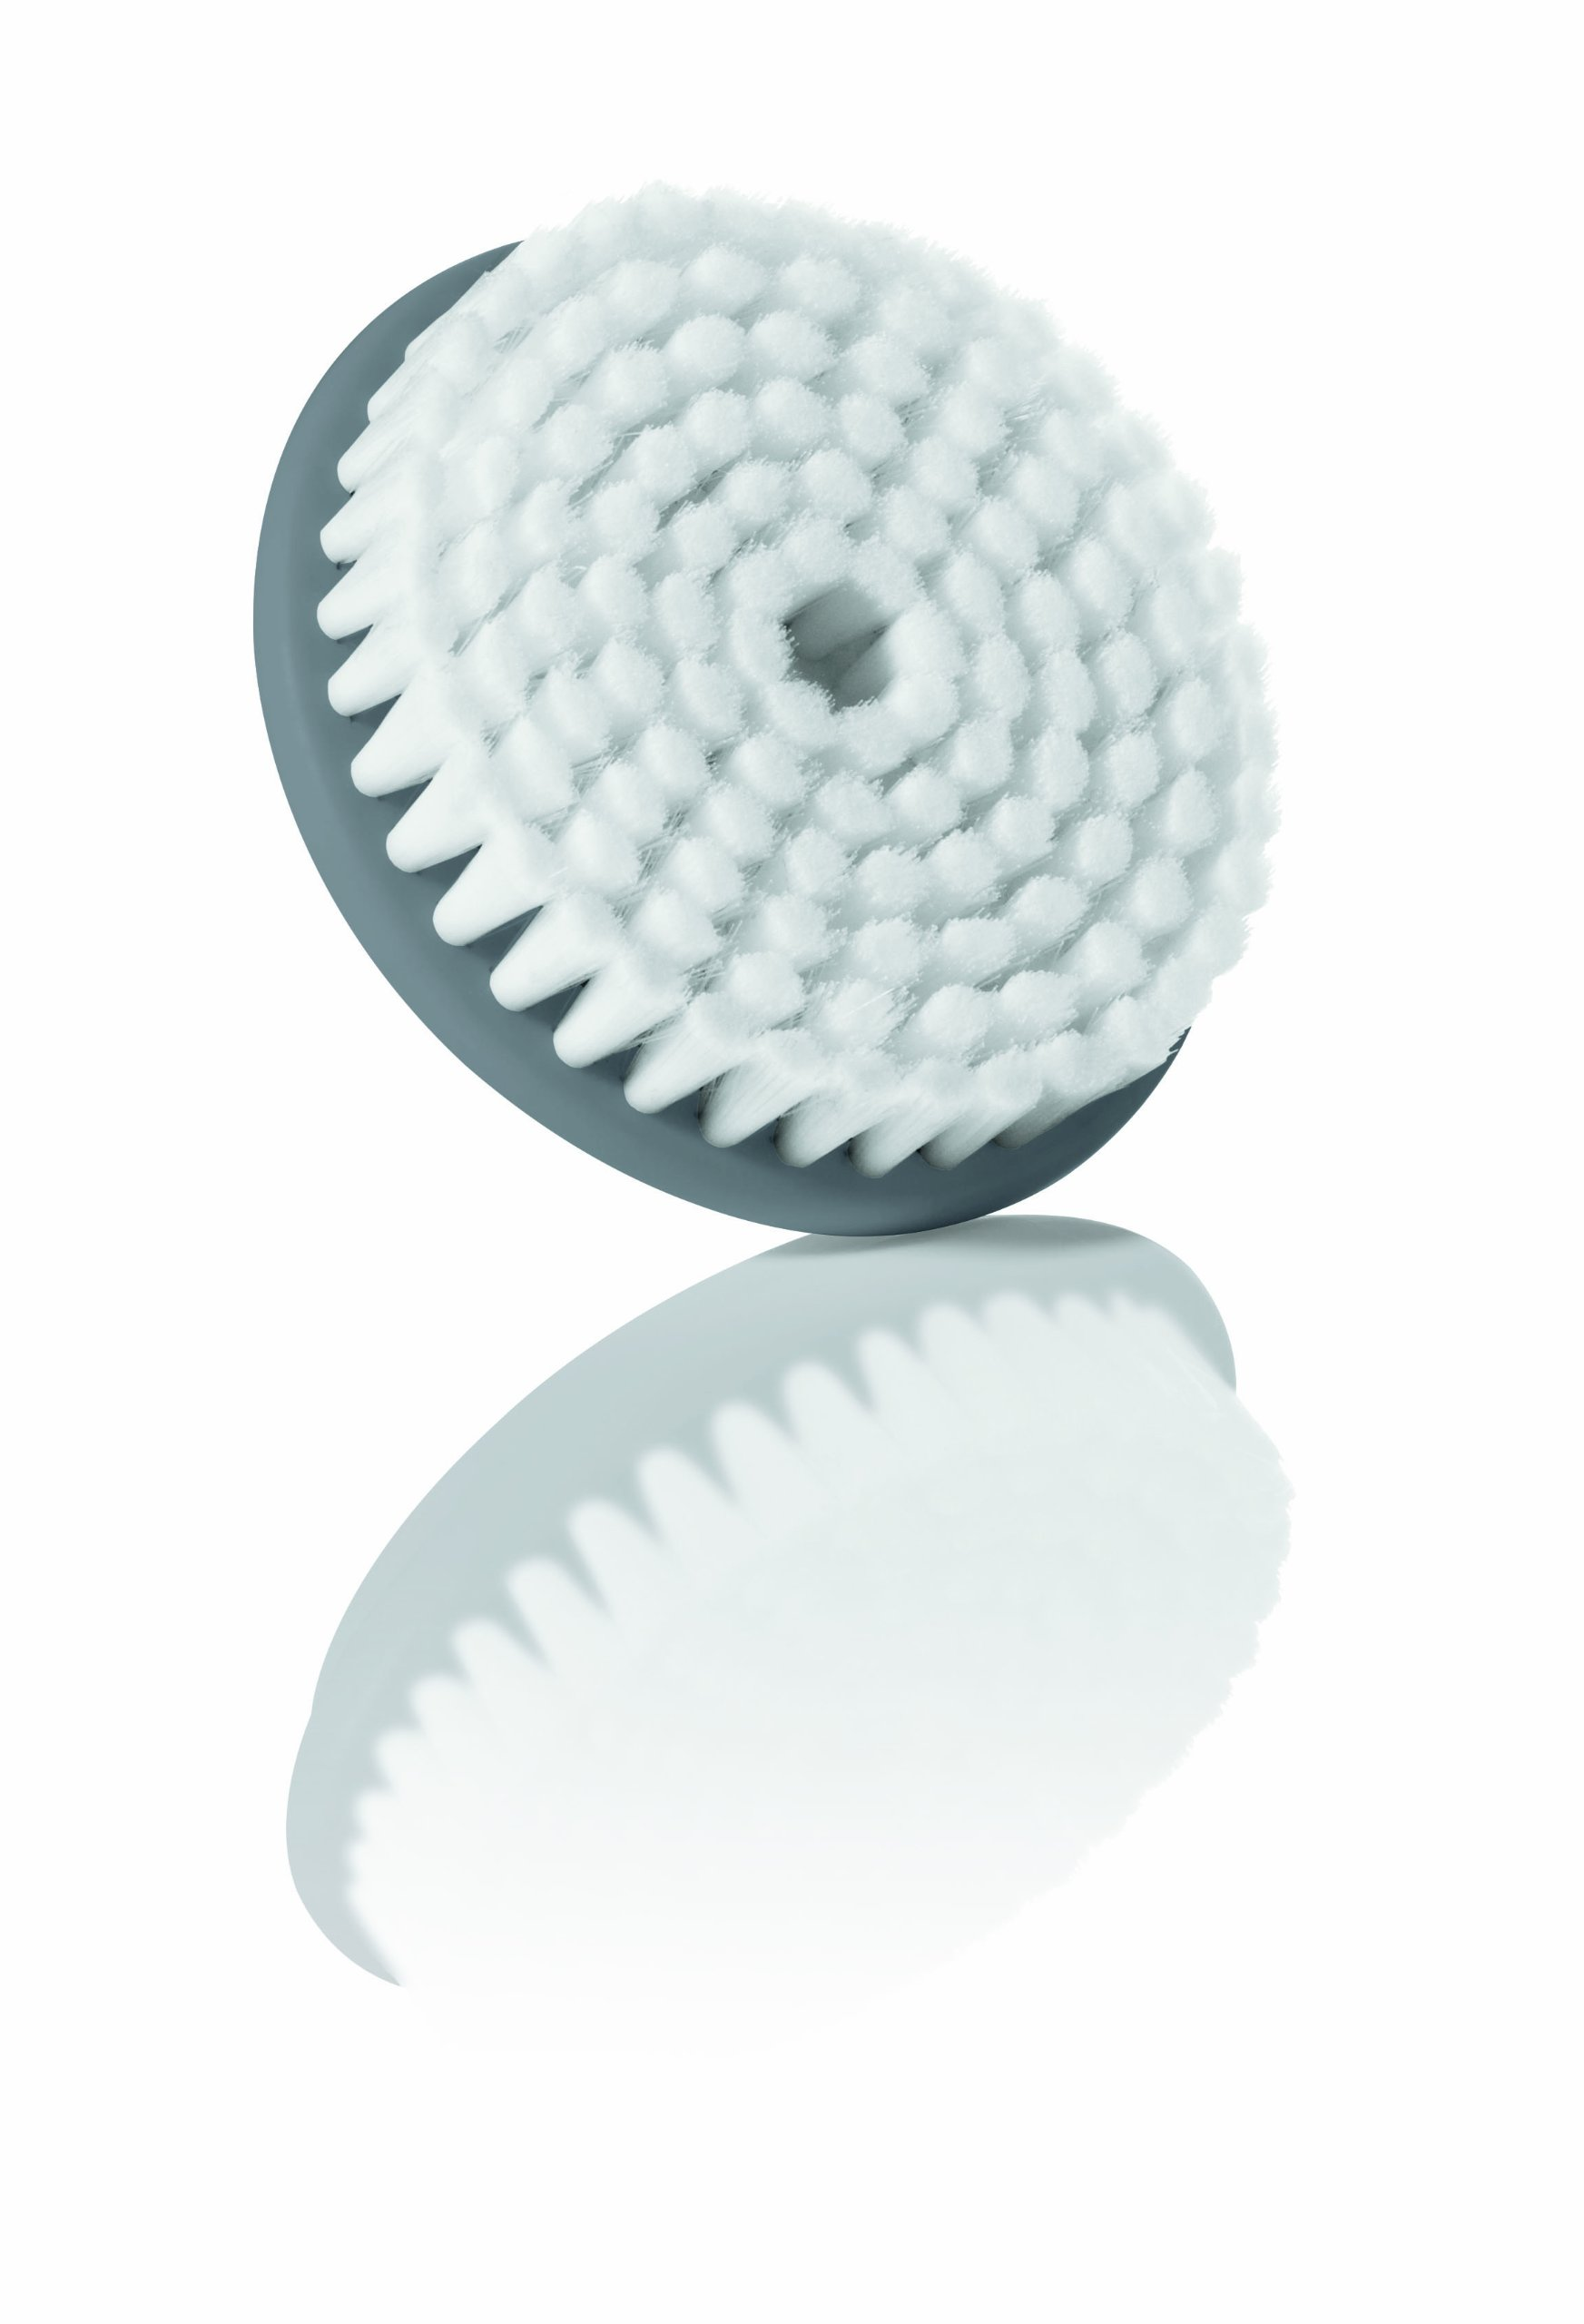 True Glow by Conair Sonic Body Brush Replacement; replacement pack for Model SFB